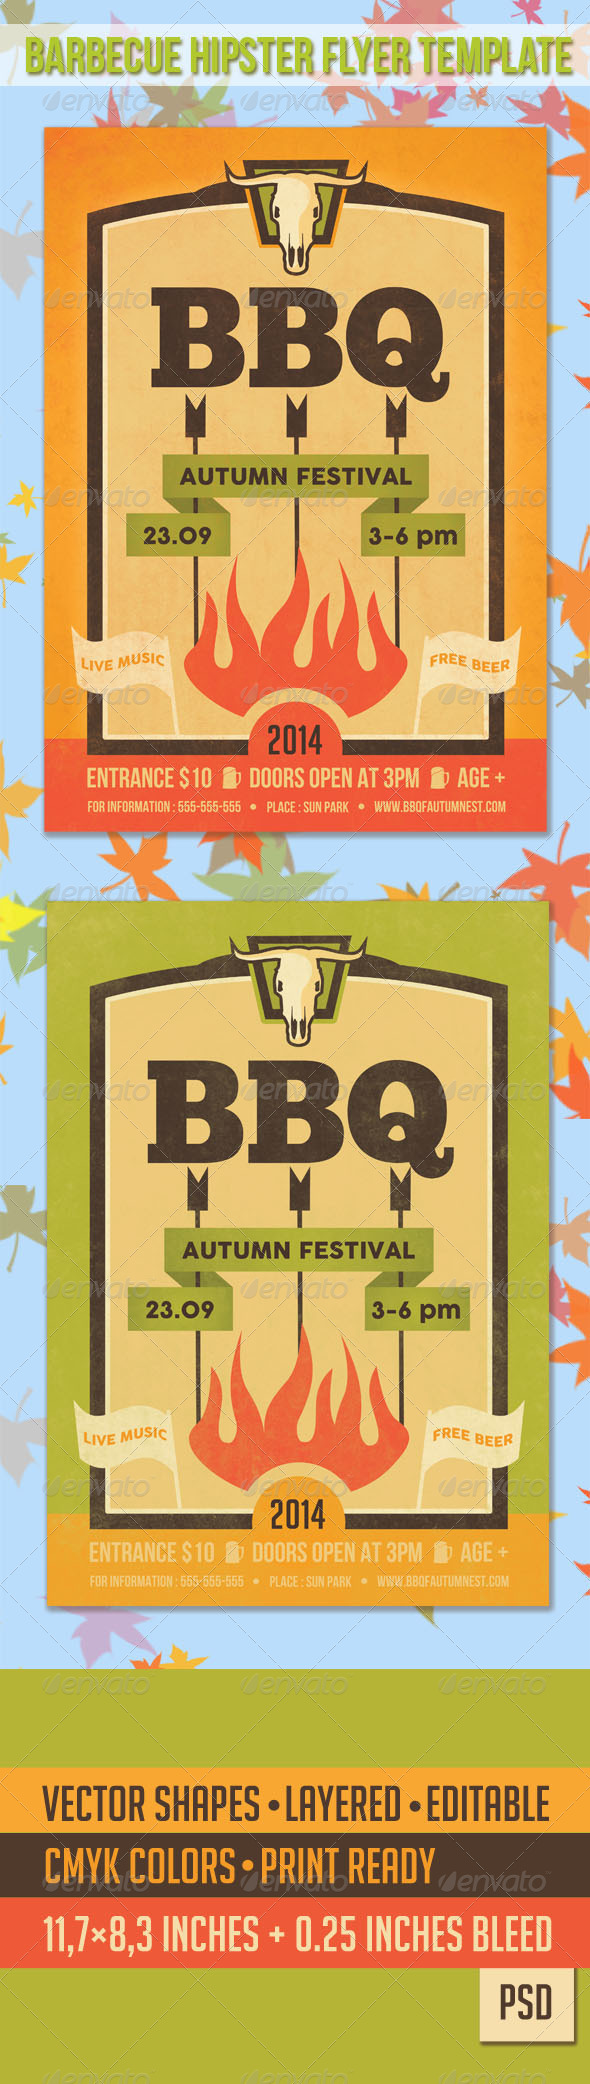 GraphicRiver Barbecue Hipster Flyer Template 8716327